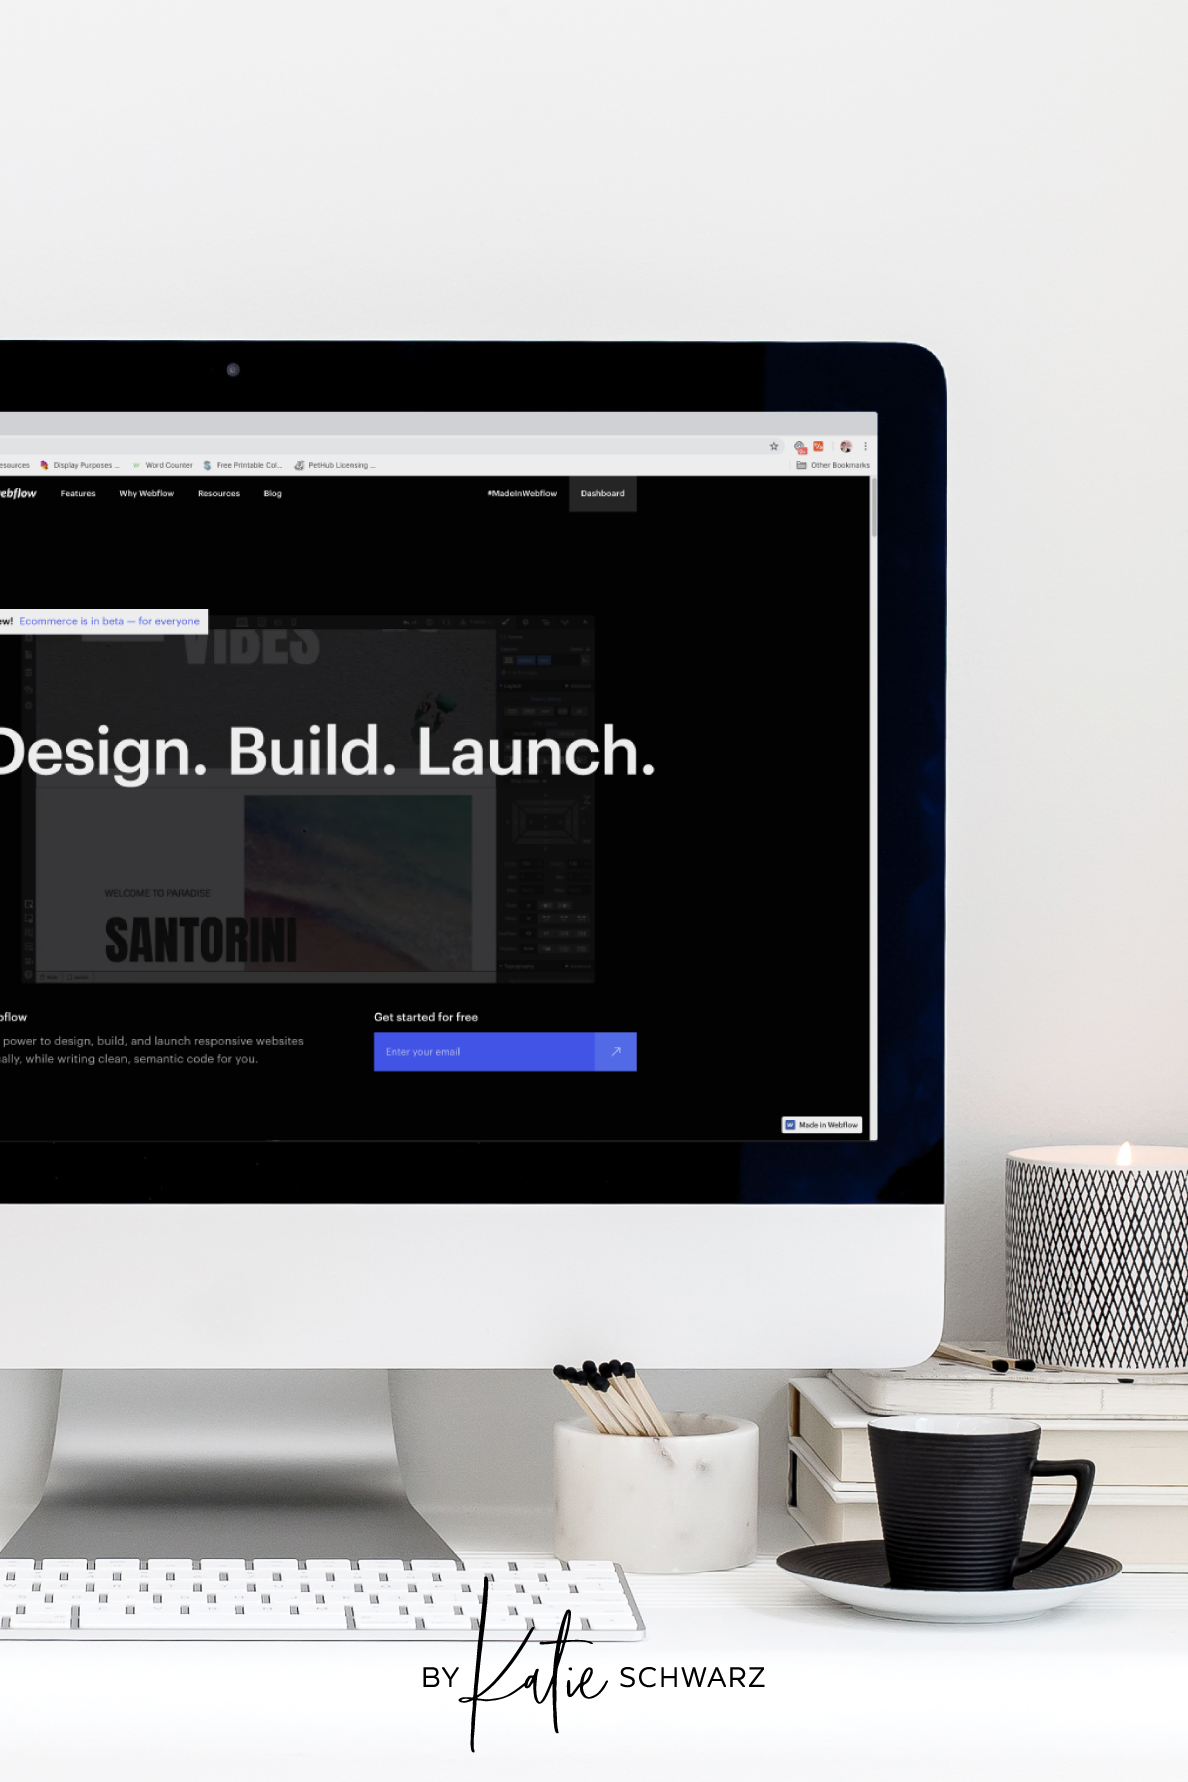 Why Webflow? A Visual Website Builder For Designers